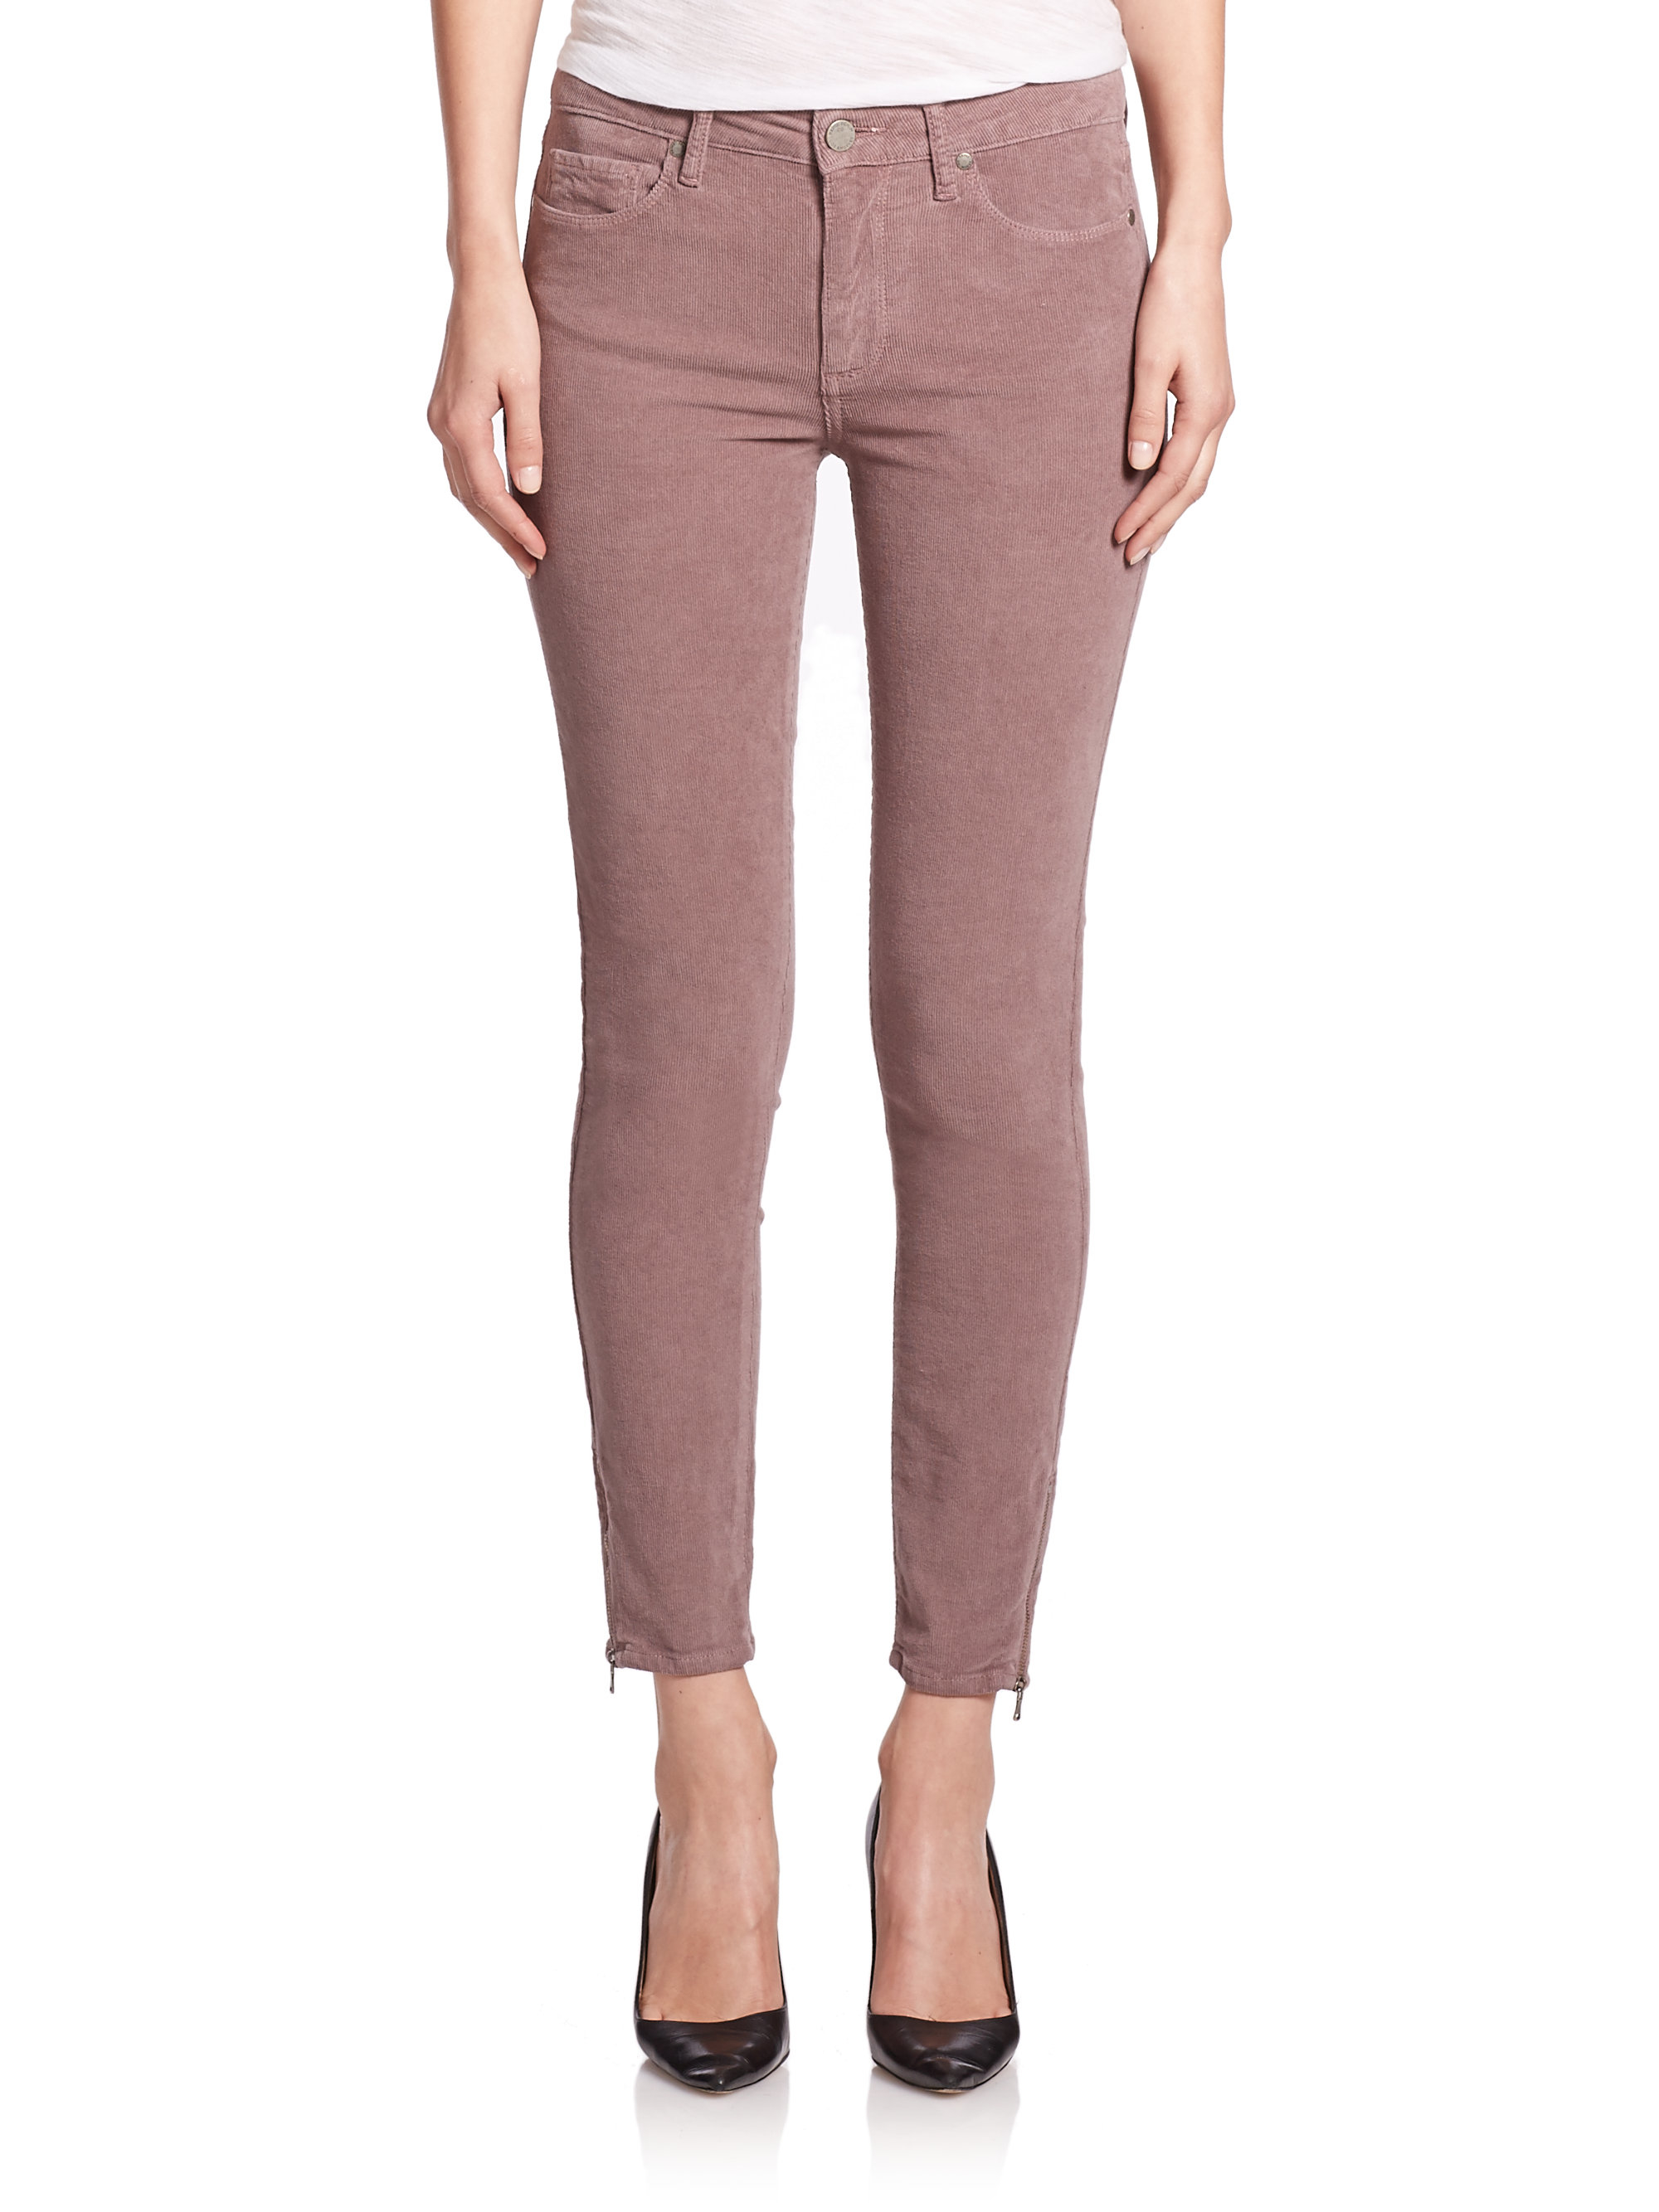 Paige Hoxton High-rise Corduroy Skinny Jeans in Purple | Lyst